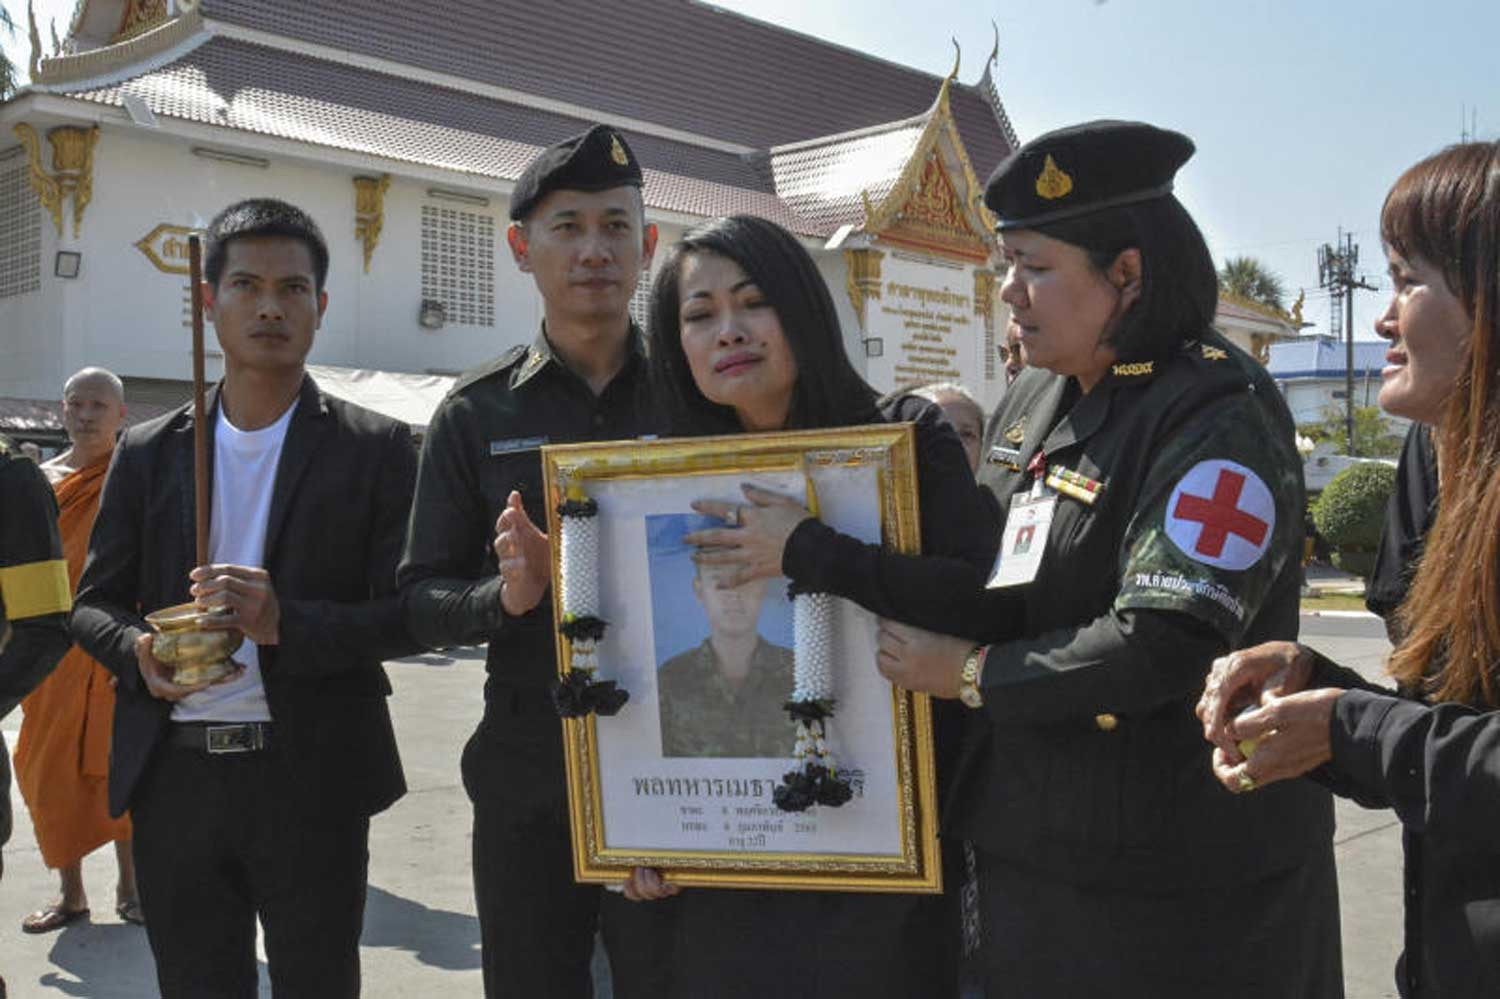 Army private Metha Lertsiri's family members hold a framed picture of him at his funeral on Tuesday in Muang district of Nakhon Ratchasima. The soldier was among those killed in the Terminal 21 shopping centre rampage in the province at the weekend. (Photo by Yuttapong Kumnodnae)